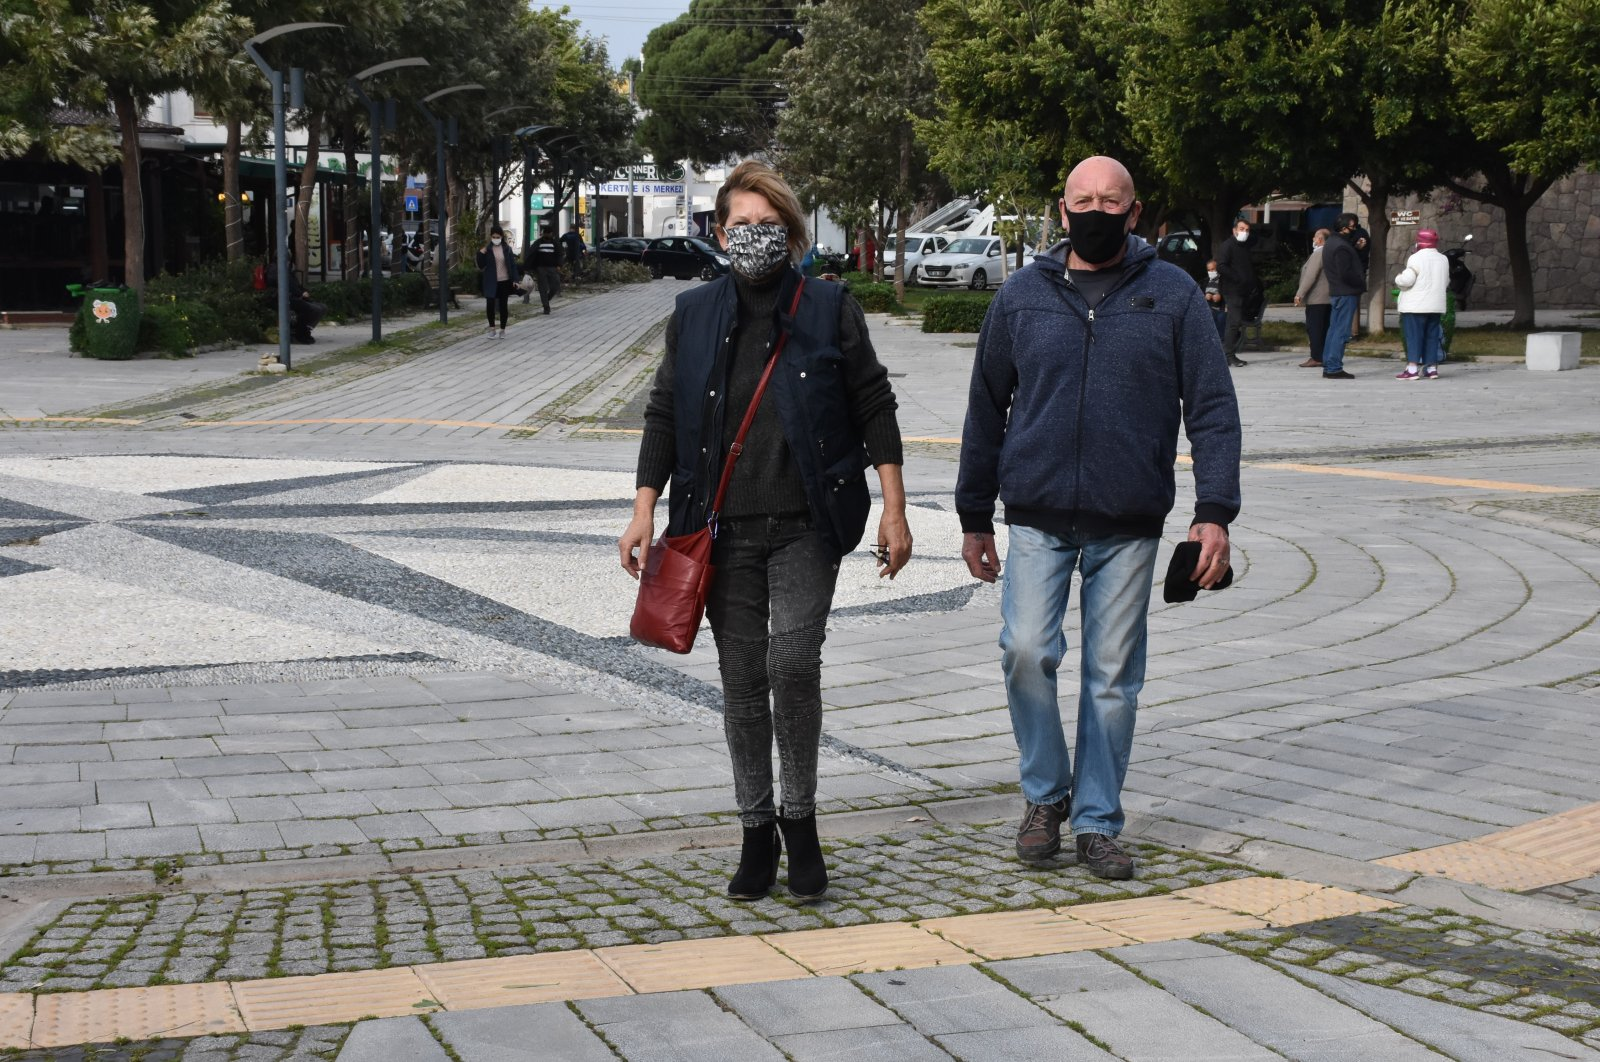 Dawn Marshall (L) and her husband Norman Marshall walk on a street in Bodrum, in Muğla province, southwestern Turkey, Jan. 21, 2021. (AA Photo)